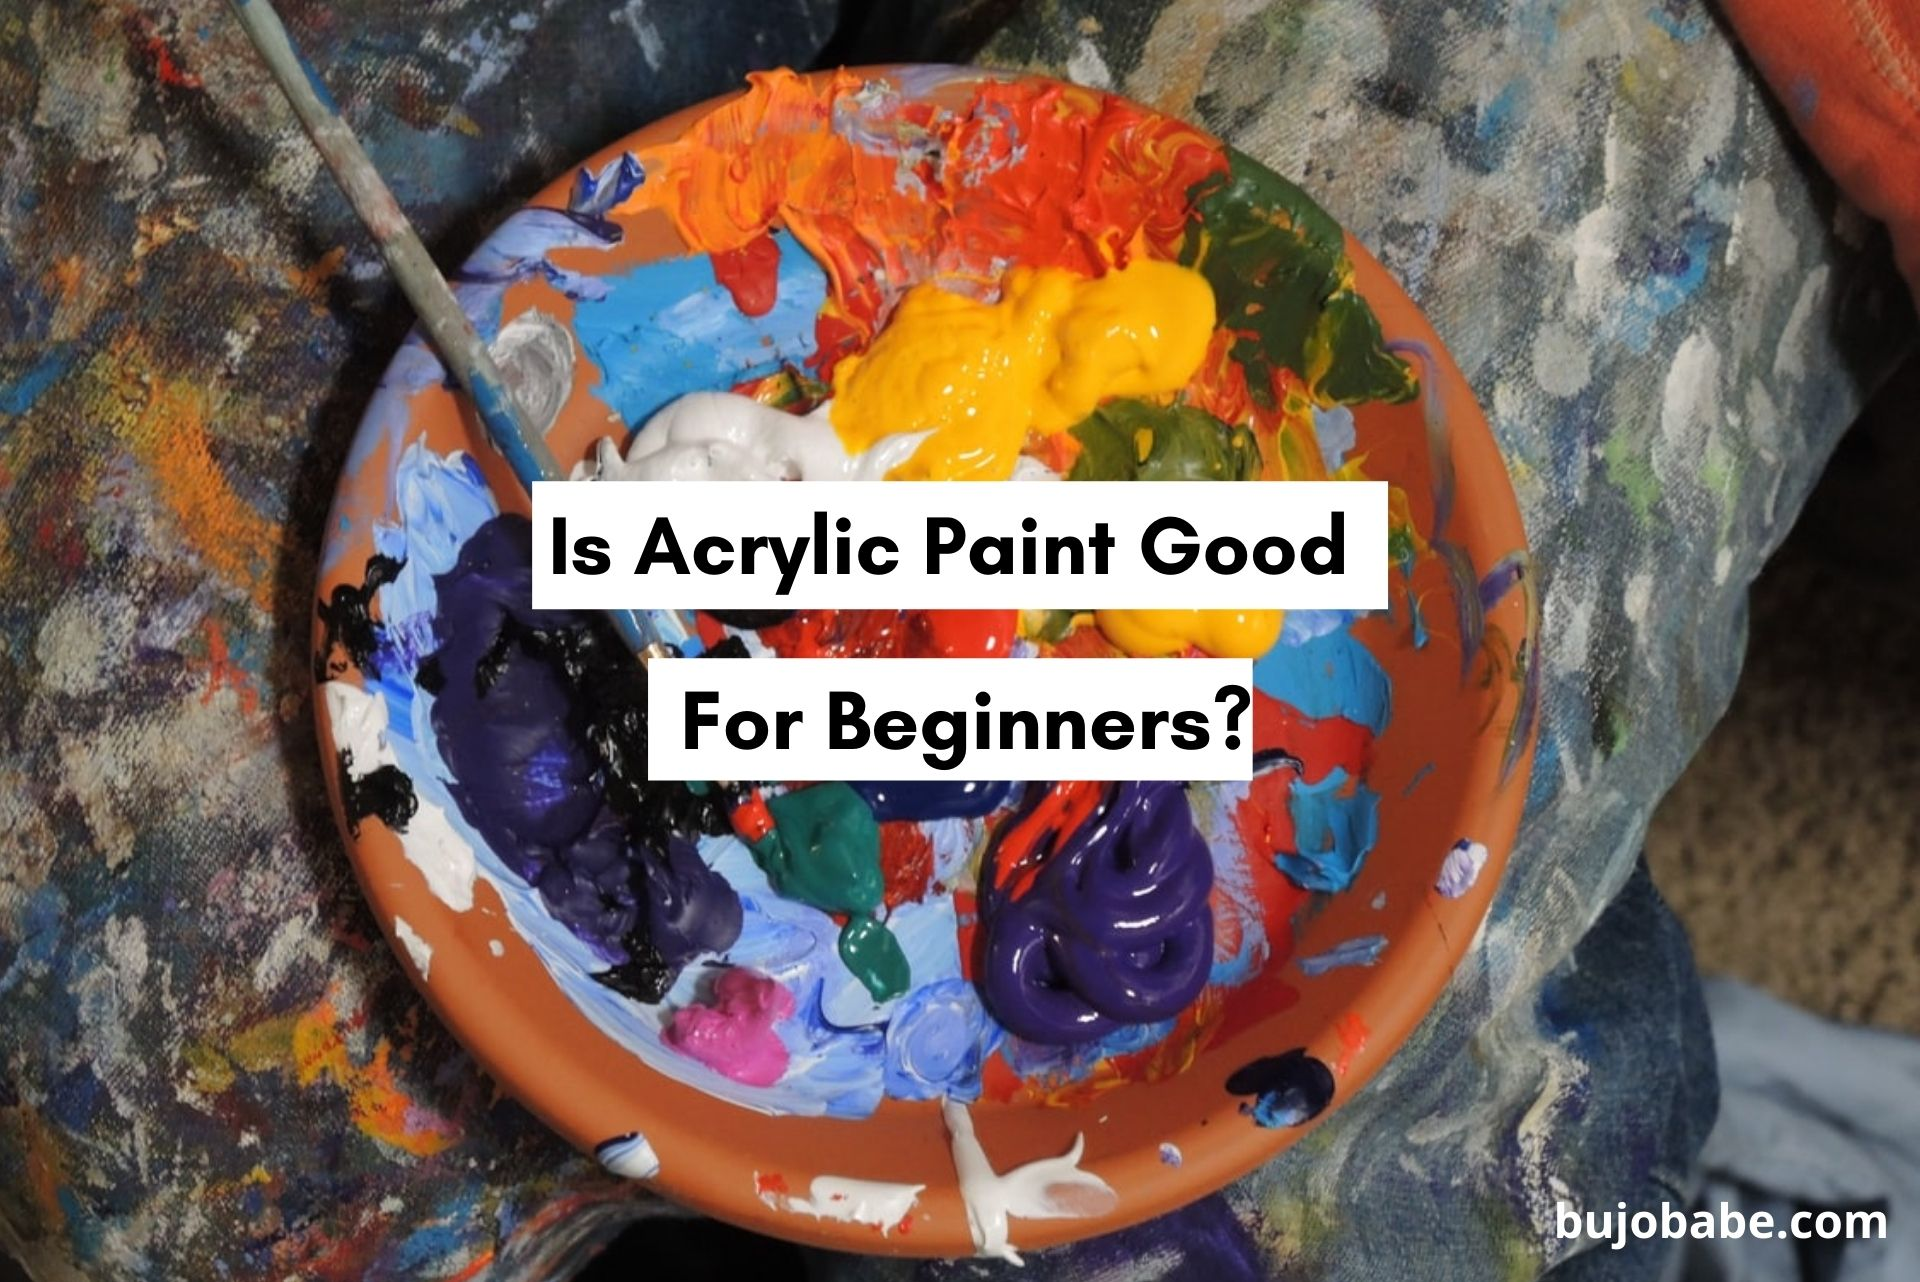 is acrylic paint good for beginners